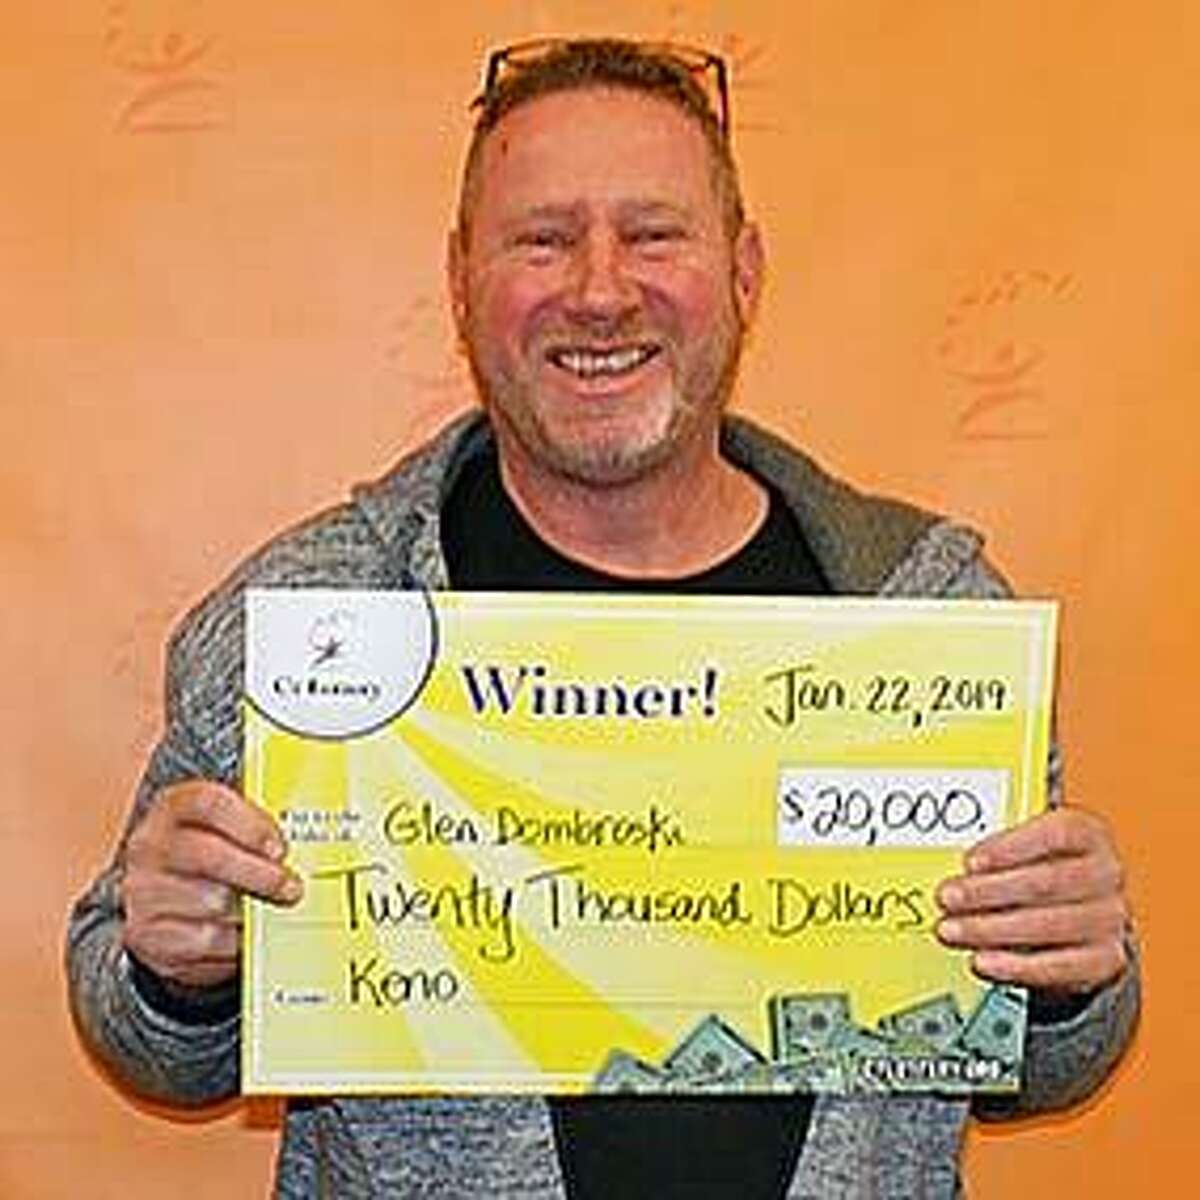 """Glen Dombroski, of Stamford, recently won $20,000 playing Keno. He told CT Lottery officials he plans to pay off two car loans with the prize money. """"That's two less payments a month to think about,"""" he said."""